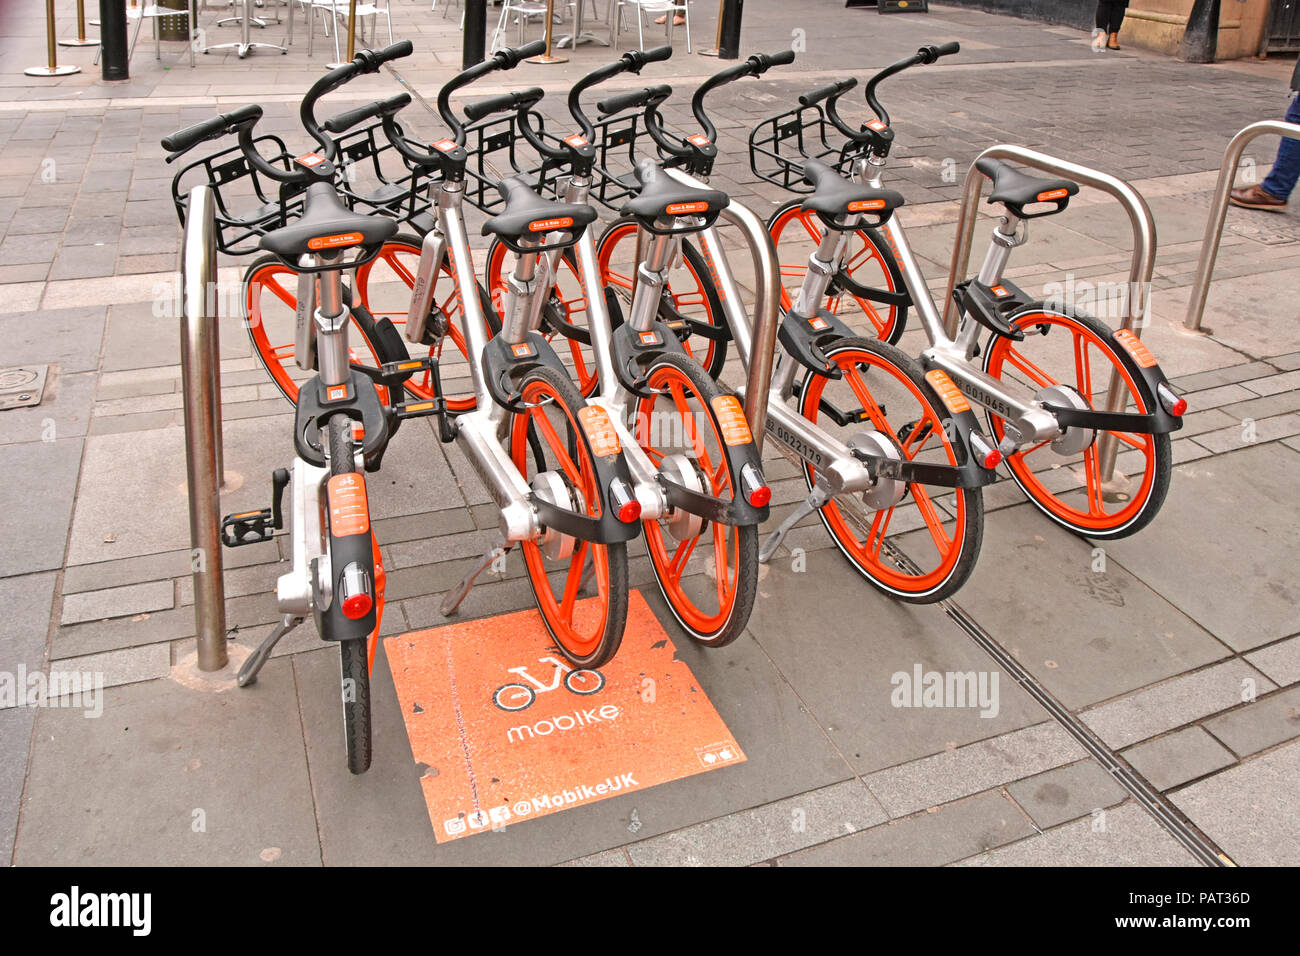 Outside Newcastle upon Tyne train station Mobike preferred parking location for bike cycle bicycle hire scheme controlled via phone apps & internet UK - Stock Image